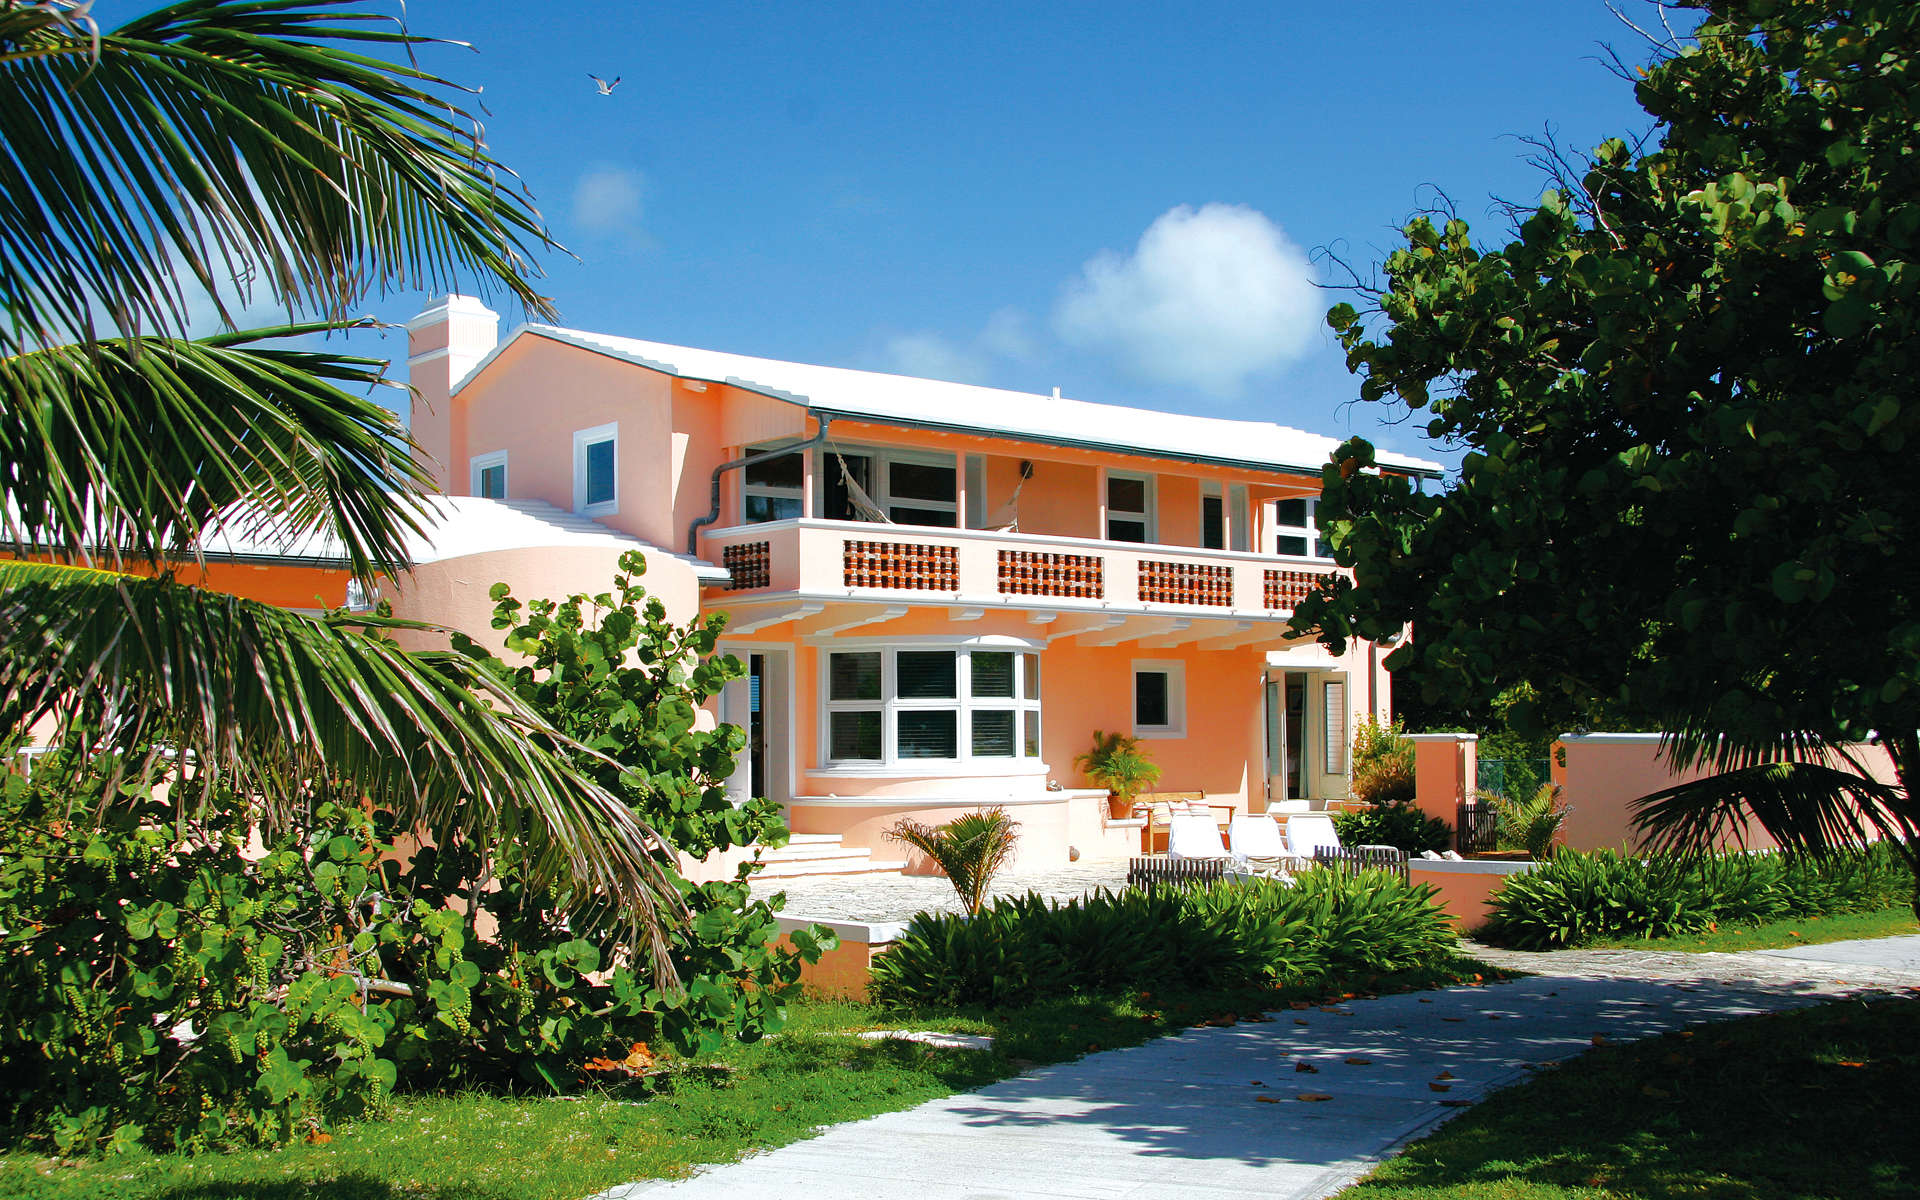 Luxury villa rentals caribbean - Bahamas - Great harbourcay - Little whalecay - Little Whale Cay - Image 1/12